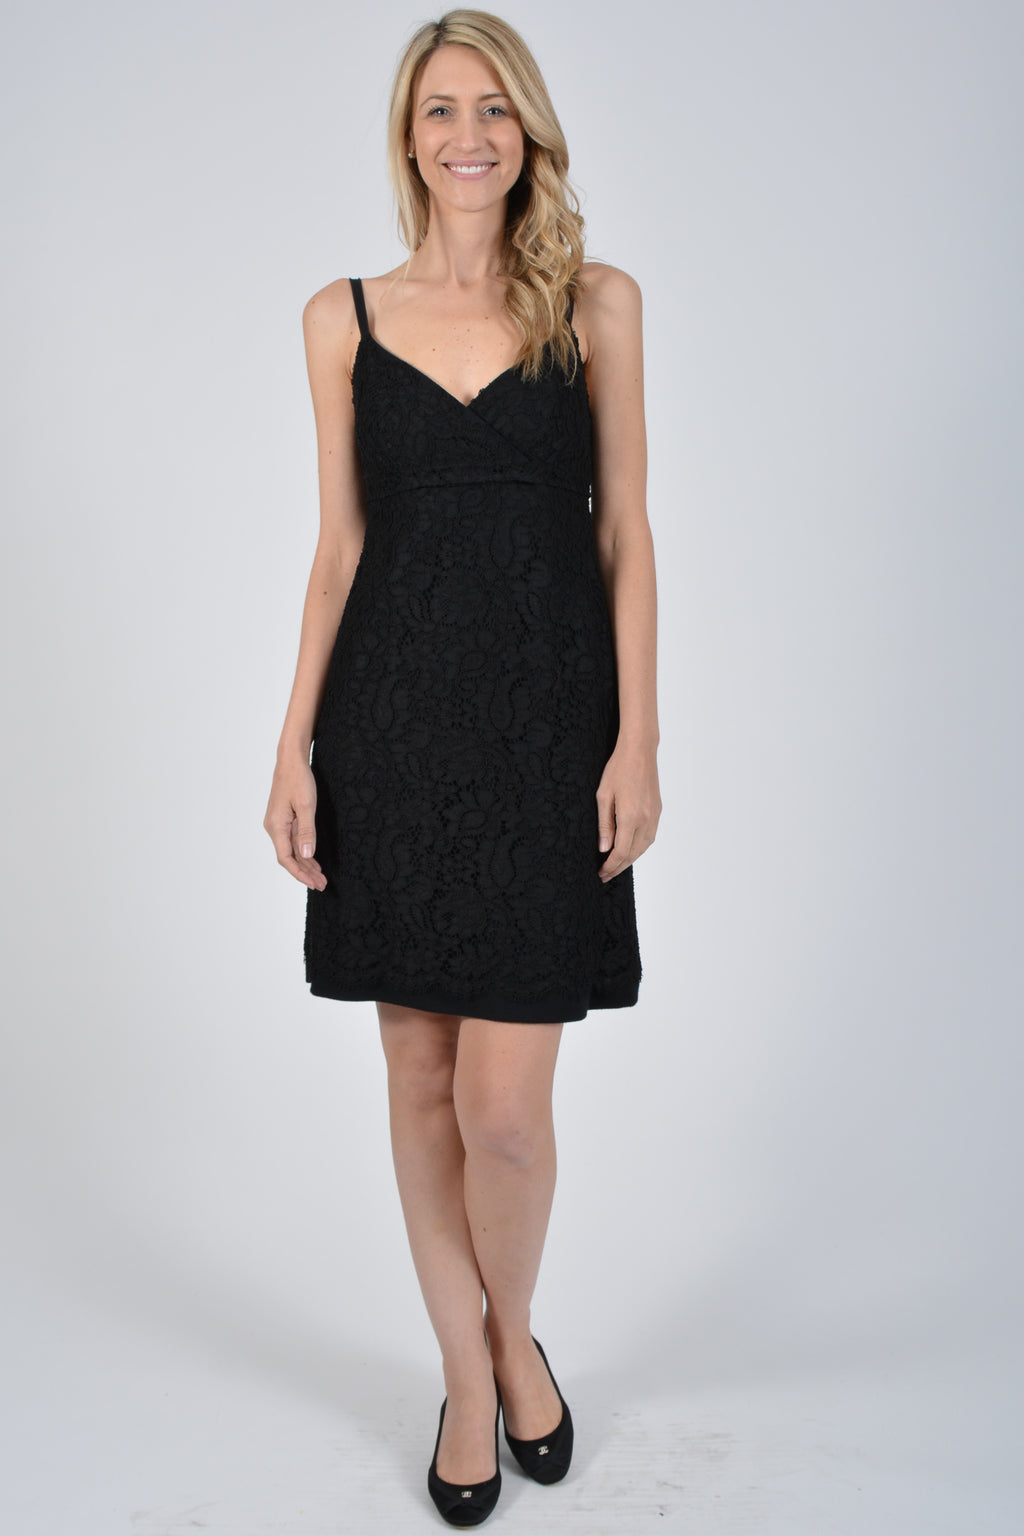 Dolce & Gabbana Black Lace Dress Size 40